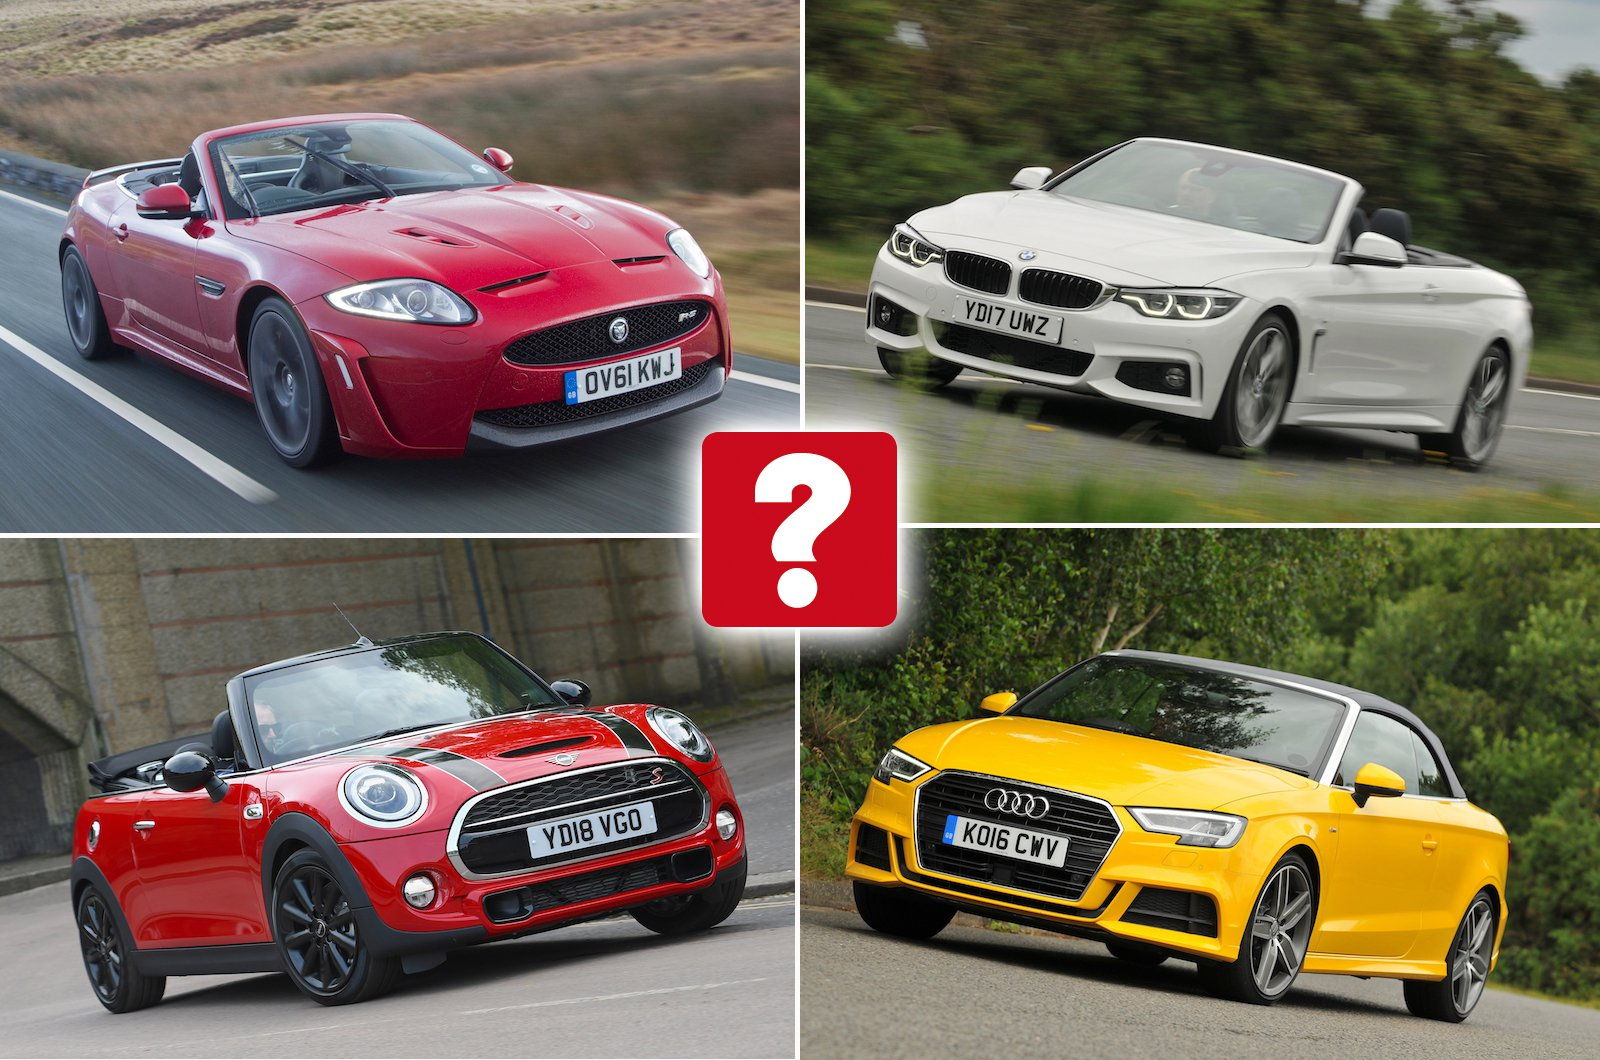 Used Convertibles